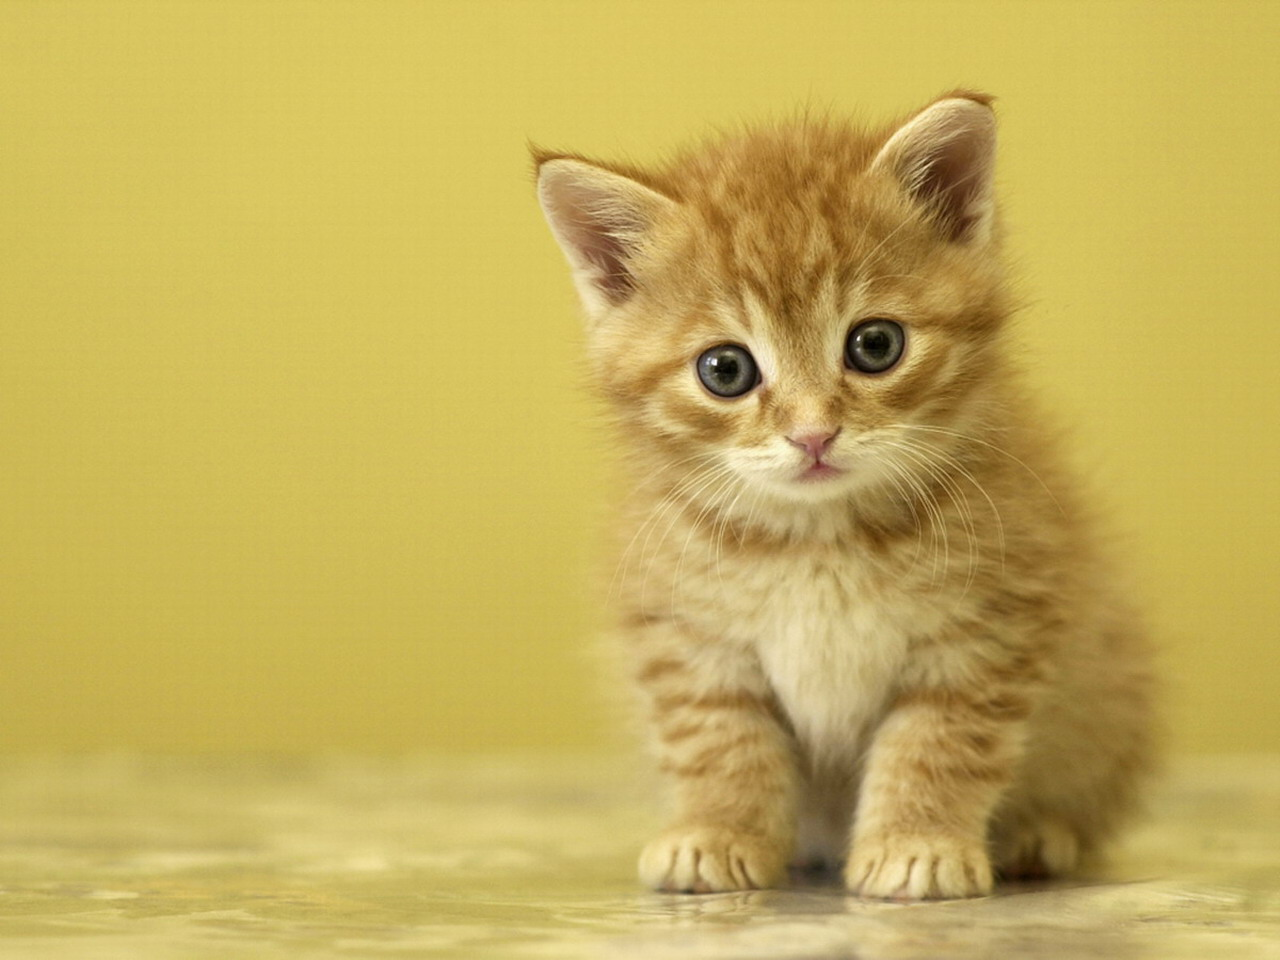 Free Download Cute Baby Kittens 9571 Hd Wallpapers In Animals Imagescicom 1280x960 For Your Desktop Mobile Tablet Explore 49 Baby Kittens Wallpaper Cute Kittens Wallpapers Free Kittens Wallpaper For